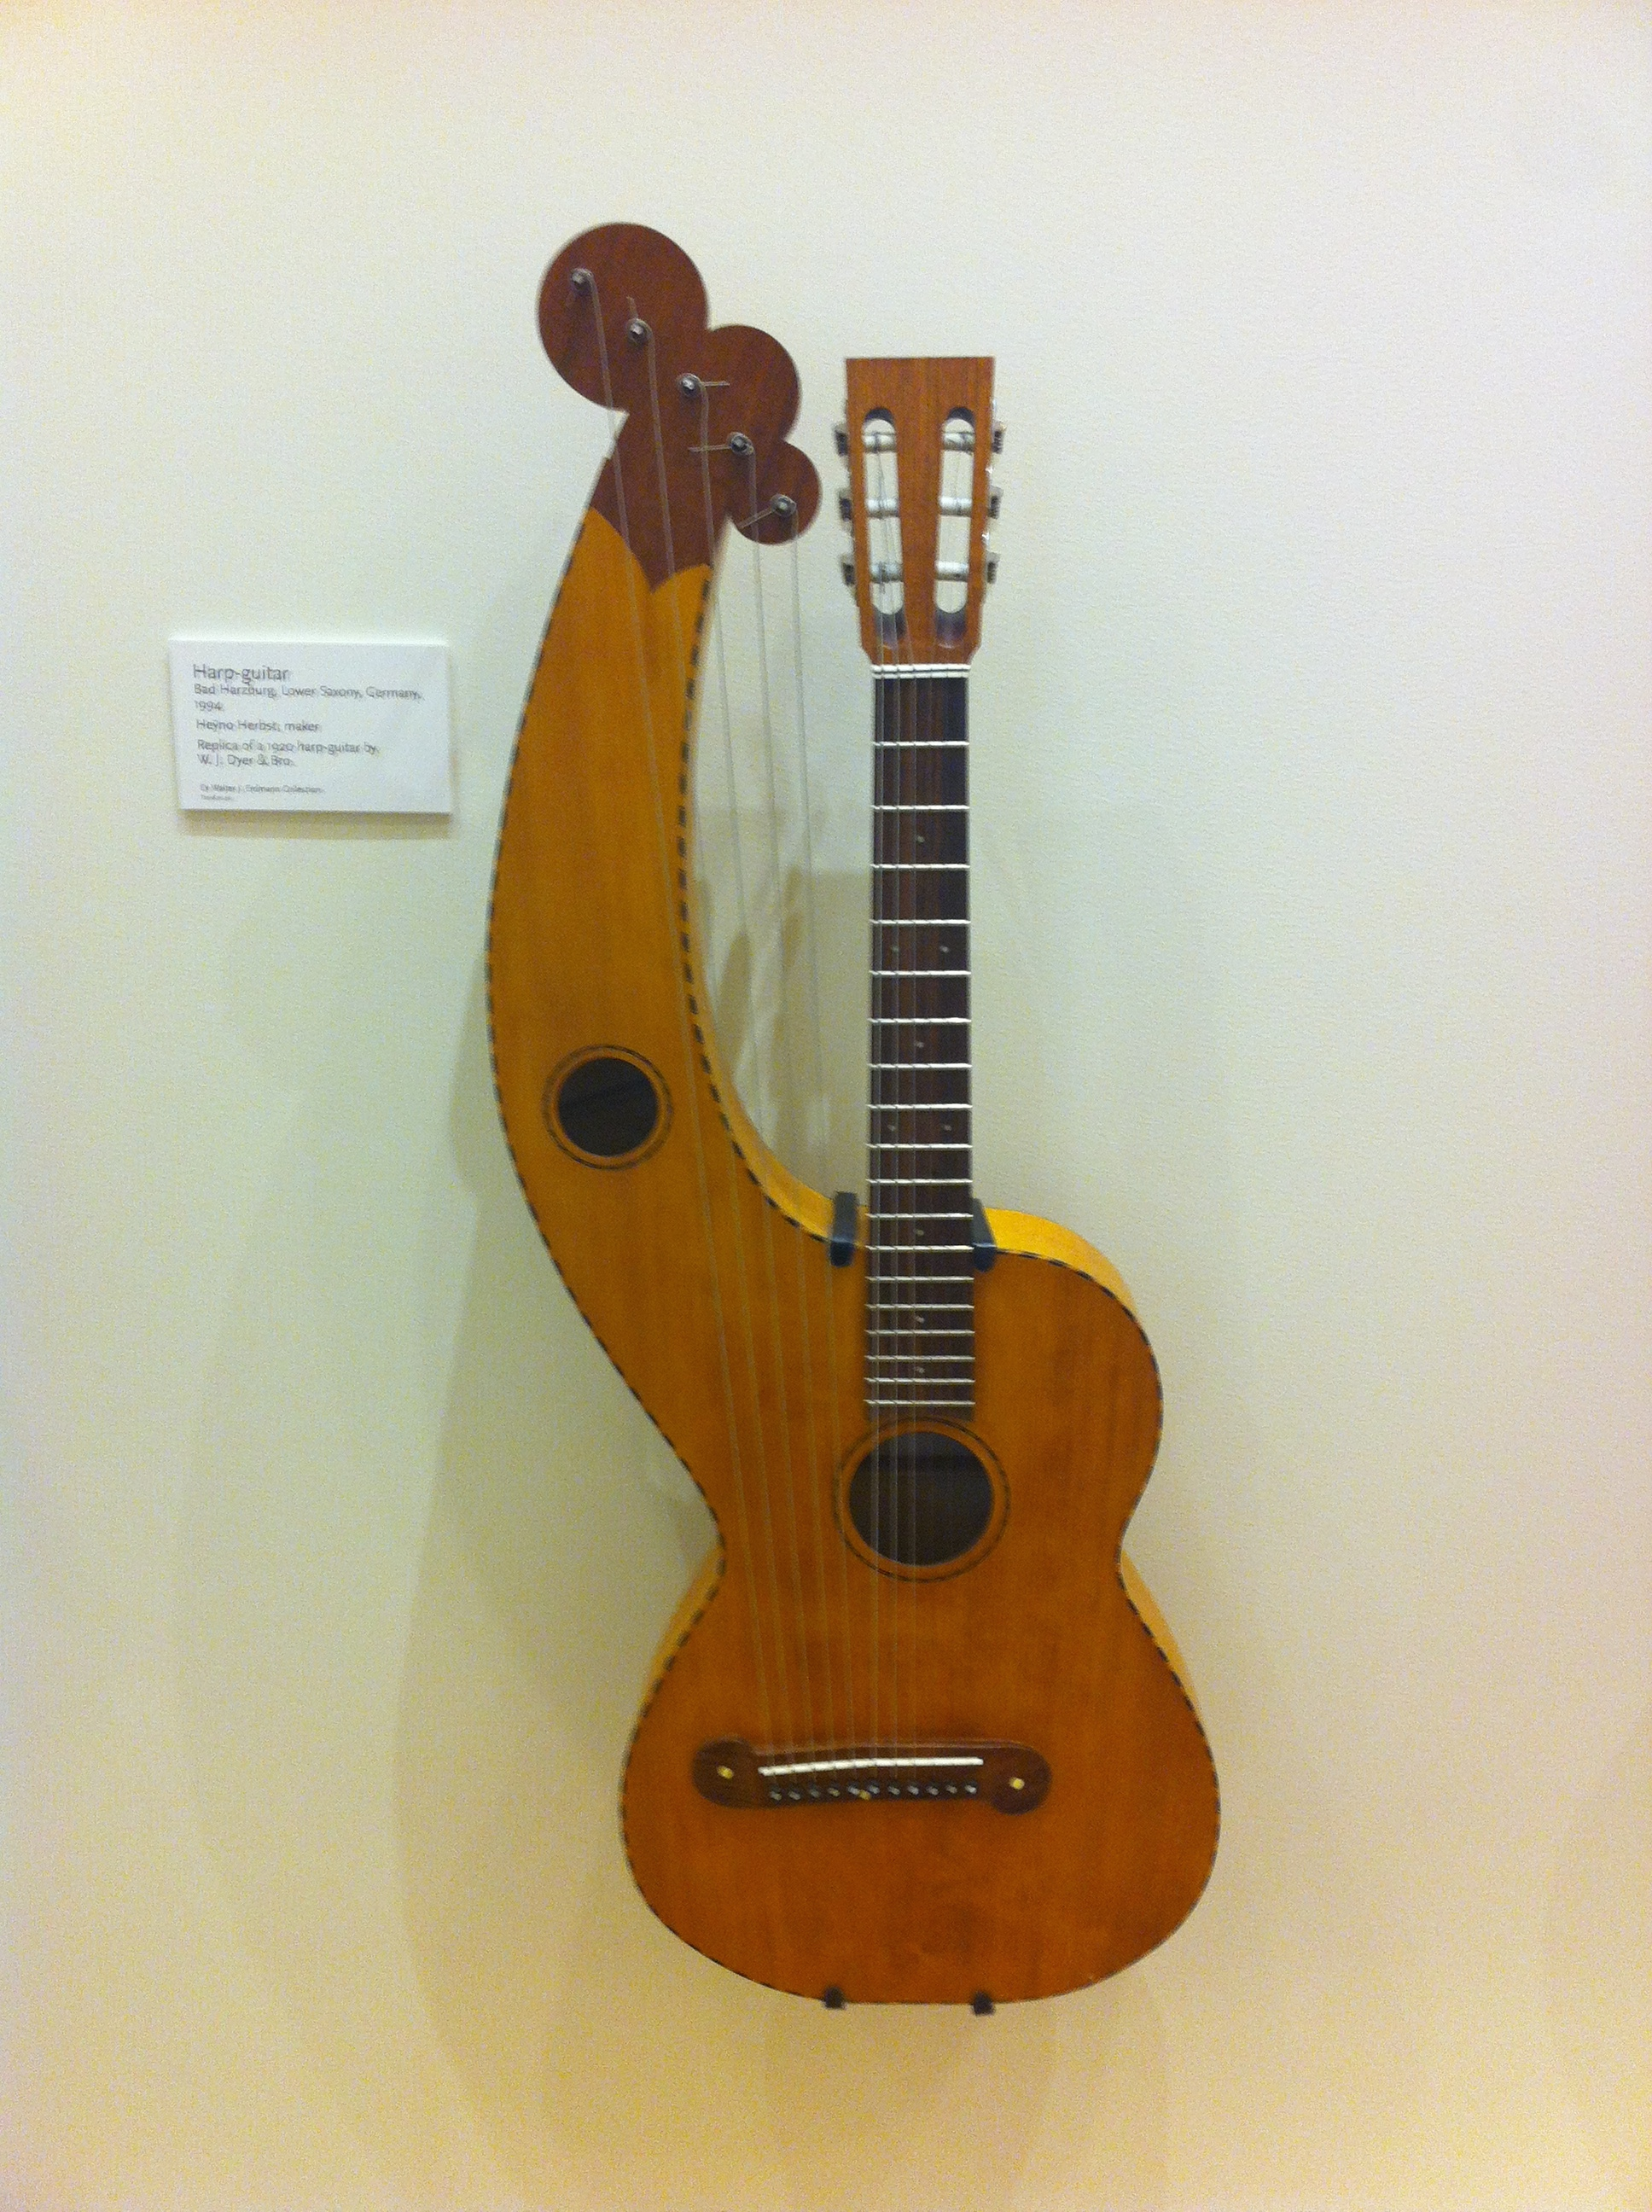 Harp guitar, Germany, 1994 (replica of 1920 harp-guitar by W.J.Dyer % Bros.)